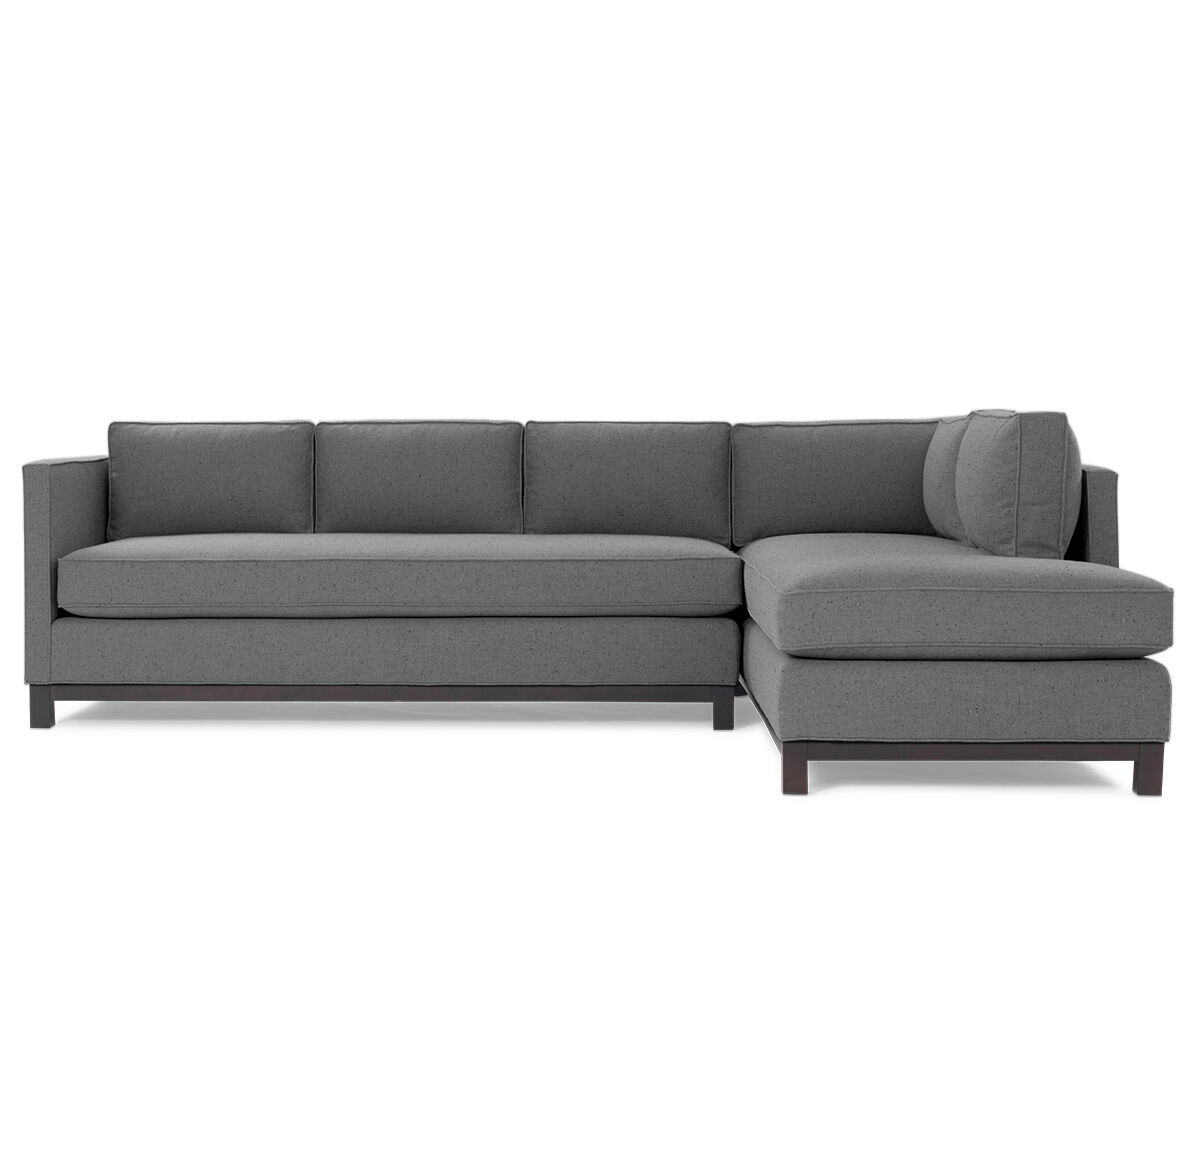 CLIFTON SECTIONAL SOFA  hi-res  sc 1 st  Mitchell Gold + Bob Williams : gold sectional sofa - Sectionals, Sofas & Couches